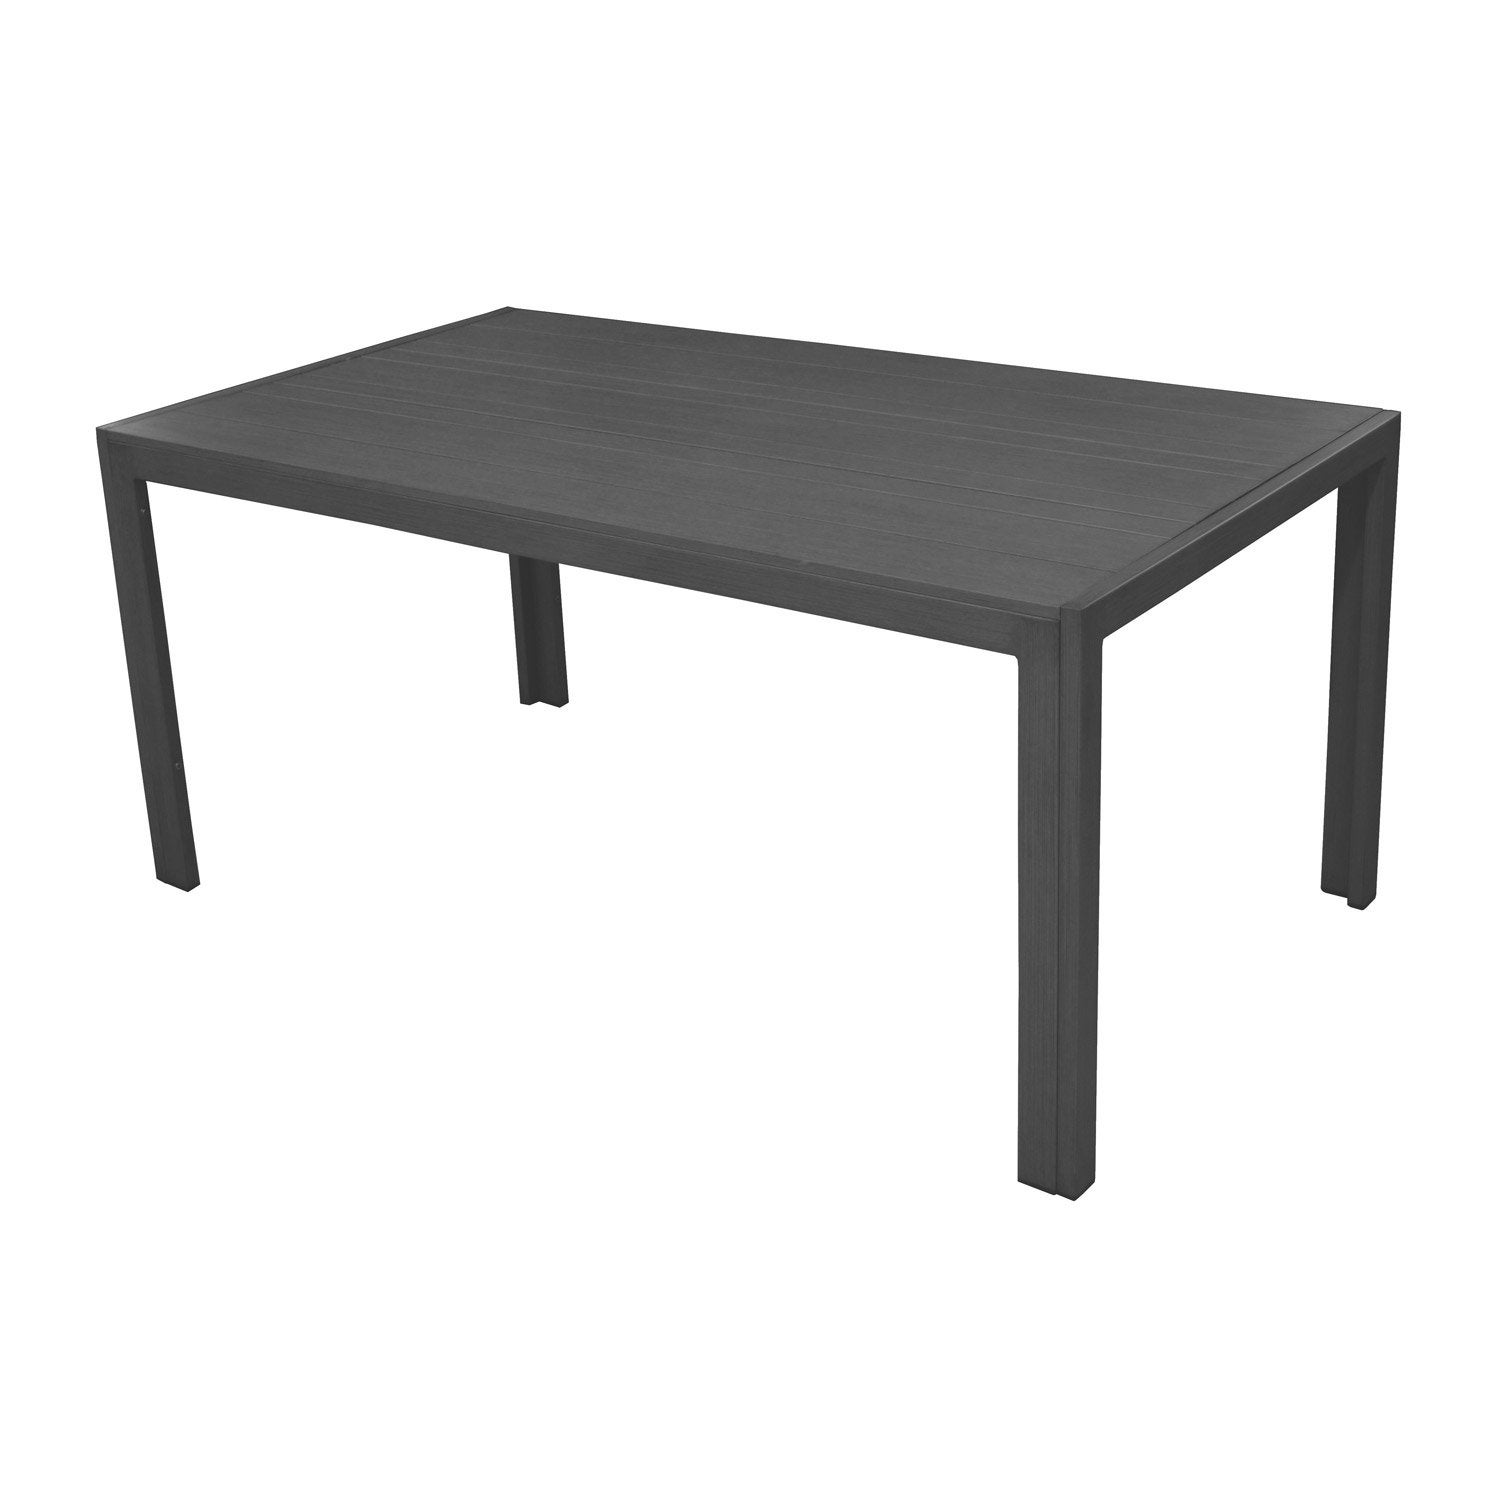 table de jardin mt rectangulaire gris 6 personnes leroy merlin. Black Bedroom Furniture Sets. Home Design Ideas